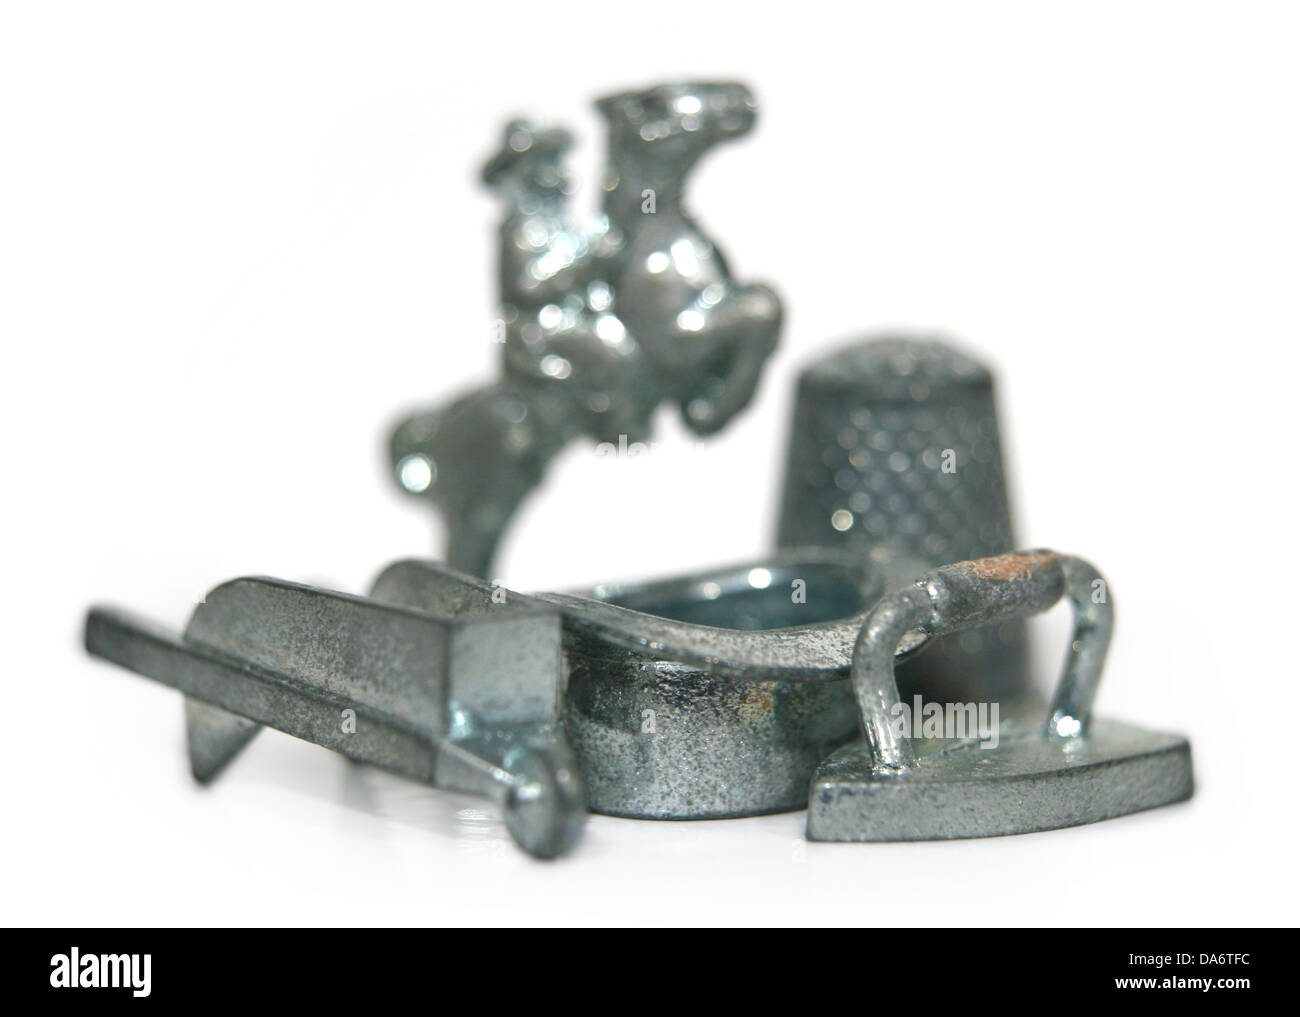 Monopoly game pieces. - Stock Image